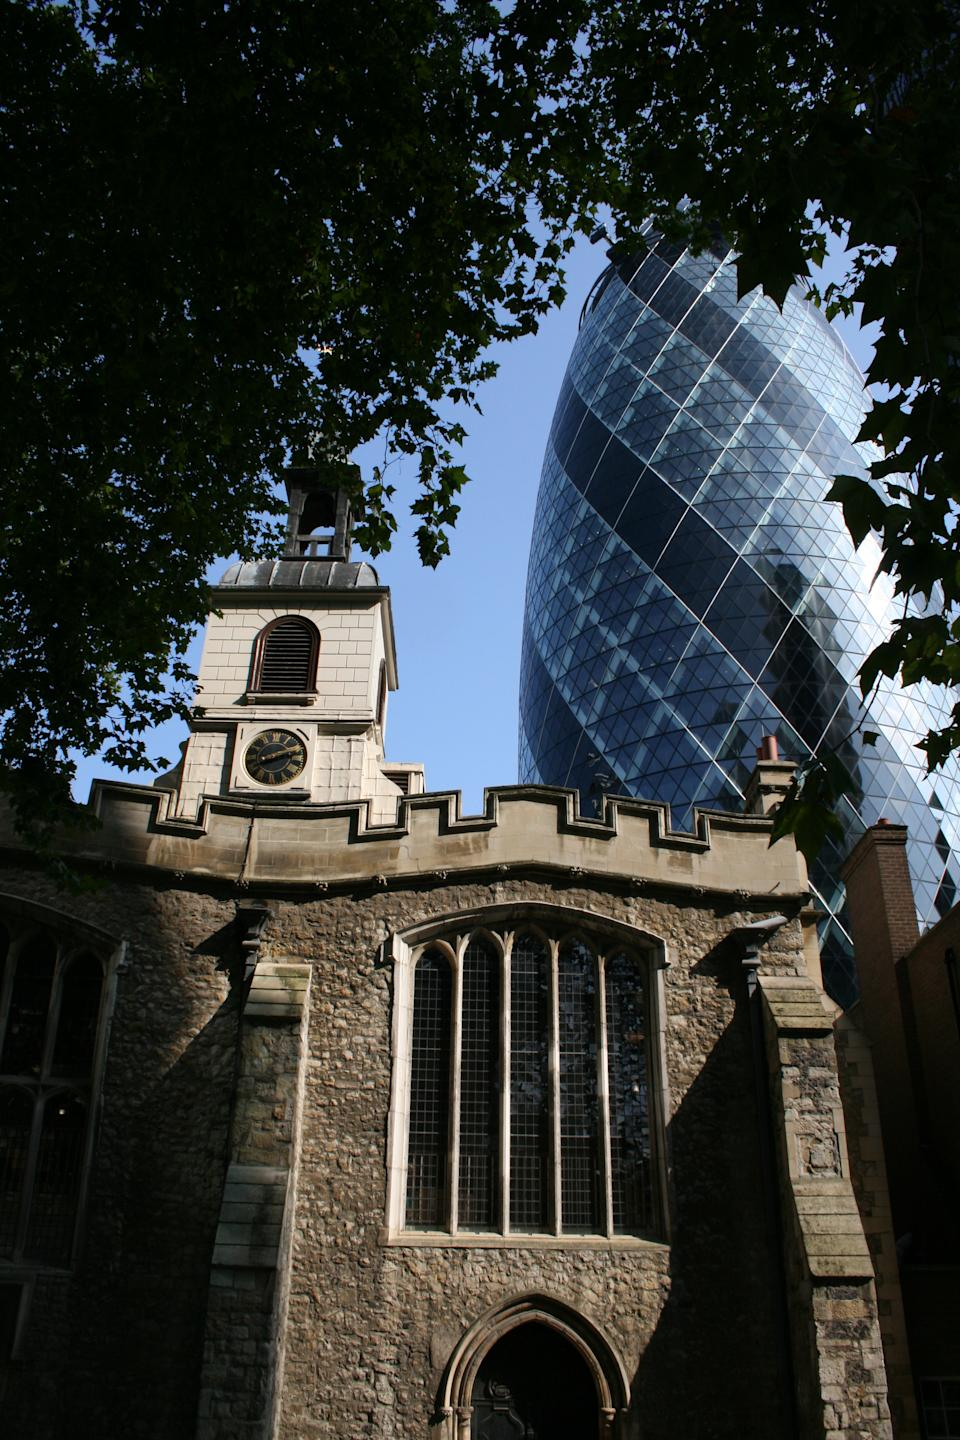 """<b>New and Old Architecture</b><br>An older building sets off the modern appearance of the office building known as the Gherkin because of its pickle shape.<br> Photograph by <a href=""""http://ngm.nationalgeographic.com/myshot/gallery/244177"""" rel=""""nofollow noopener"""" target=""""_blank"""" data-ylk=""""slk:Tina Morse"""" class=""""link rapid-noclick-resp"""">Tina Morse</a>, <a href=""""http://ngm.nationalgeographic.com/myshot/"""" rel=""""nofollow noopener"""" target=""""_blank"""" data-ylk=""""slk:My Shot"""" class=""""link rapid-noclick-resp"""">My Shot</a>"""